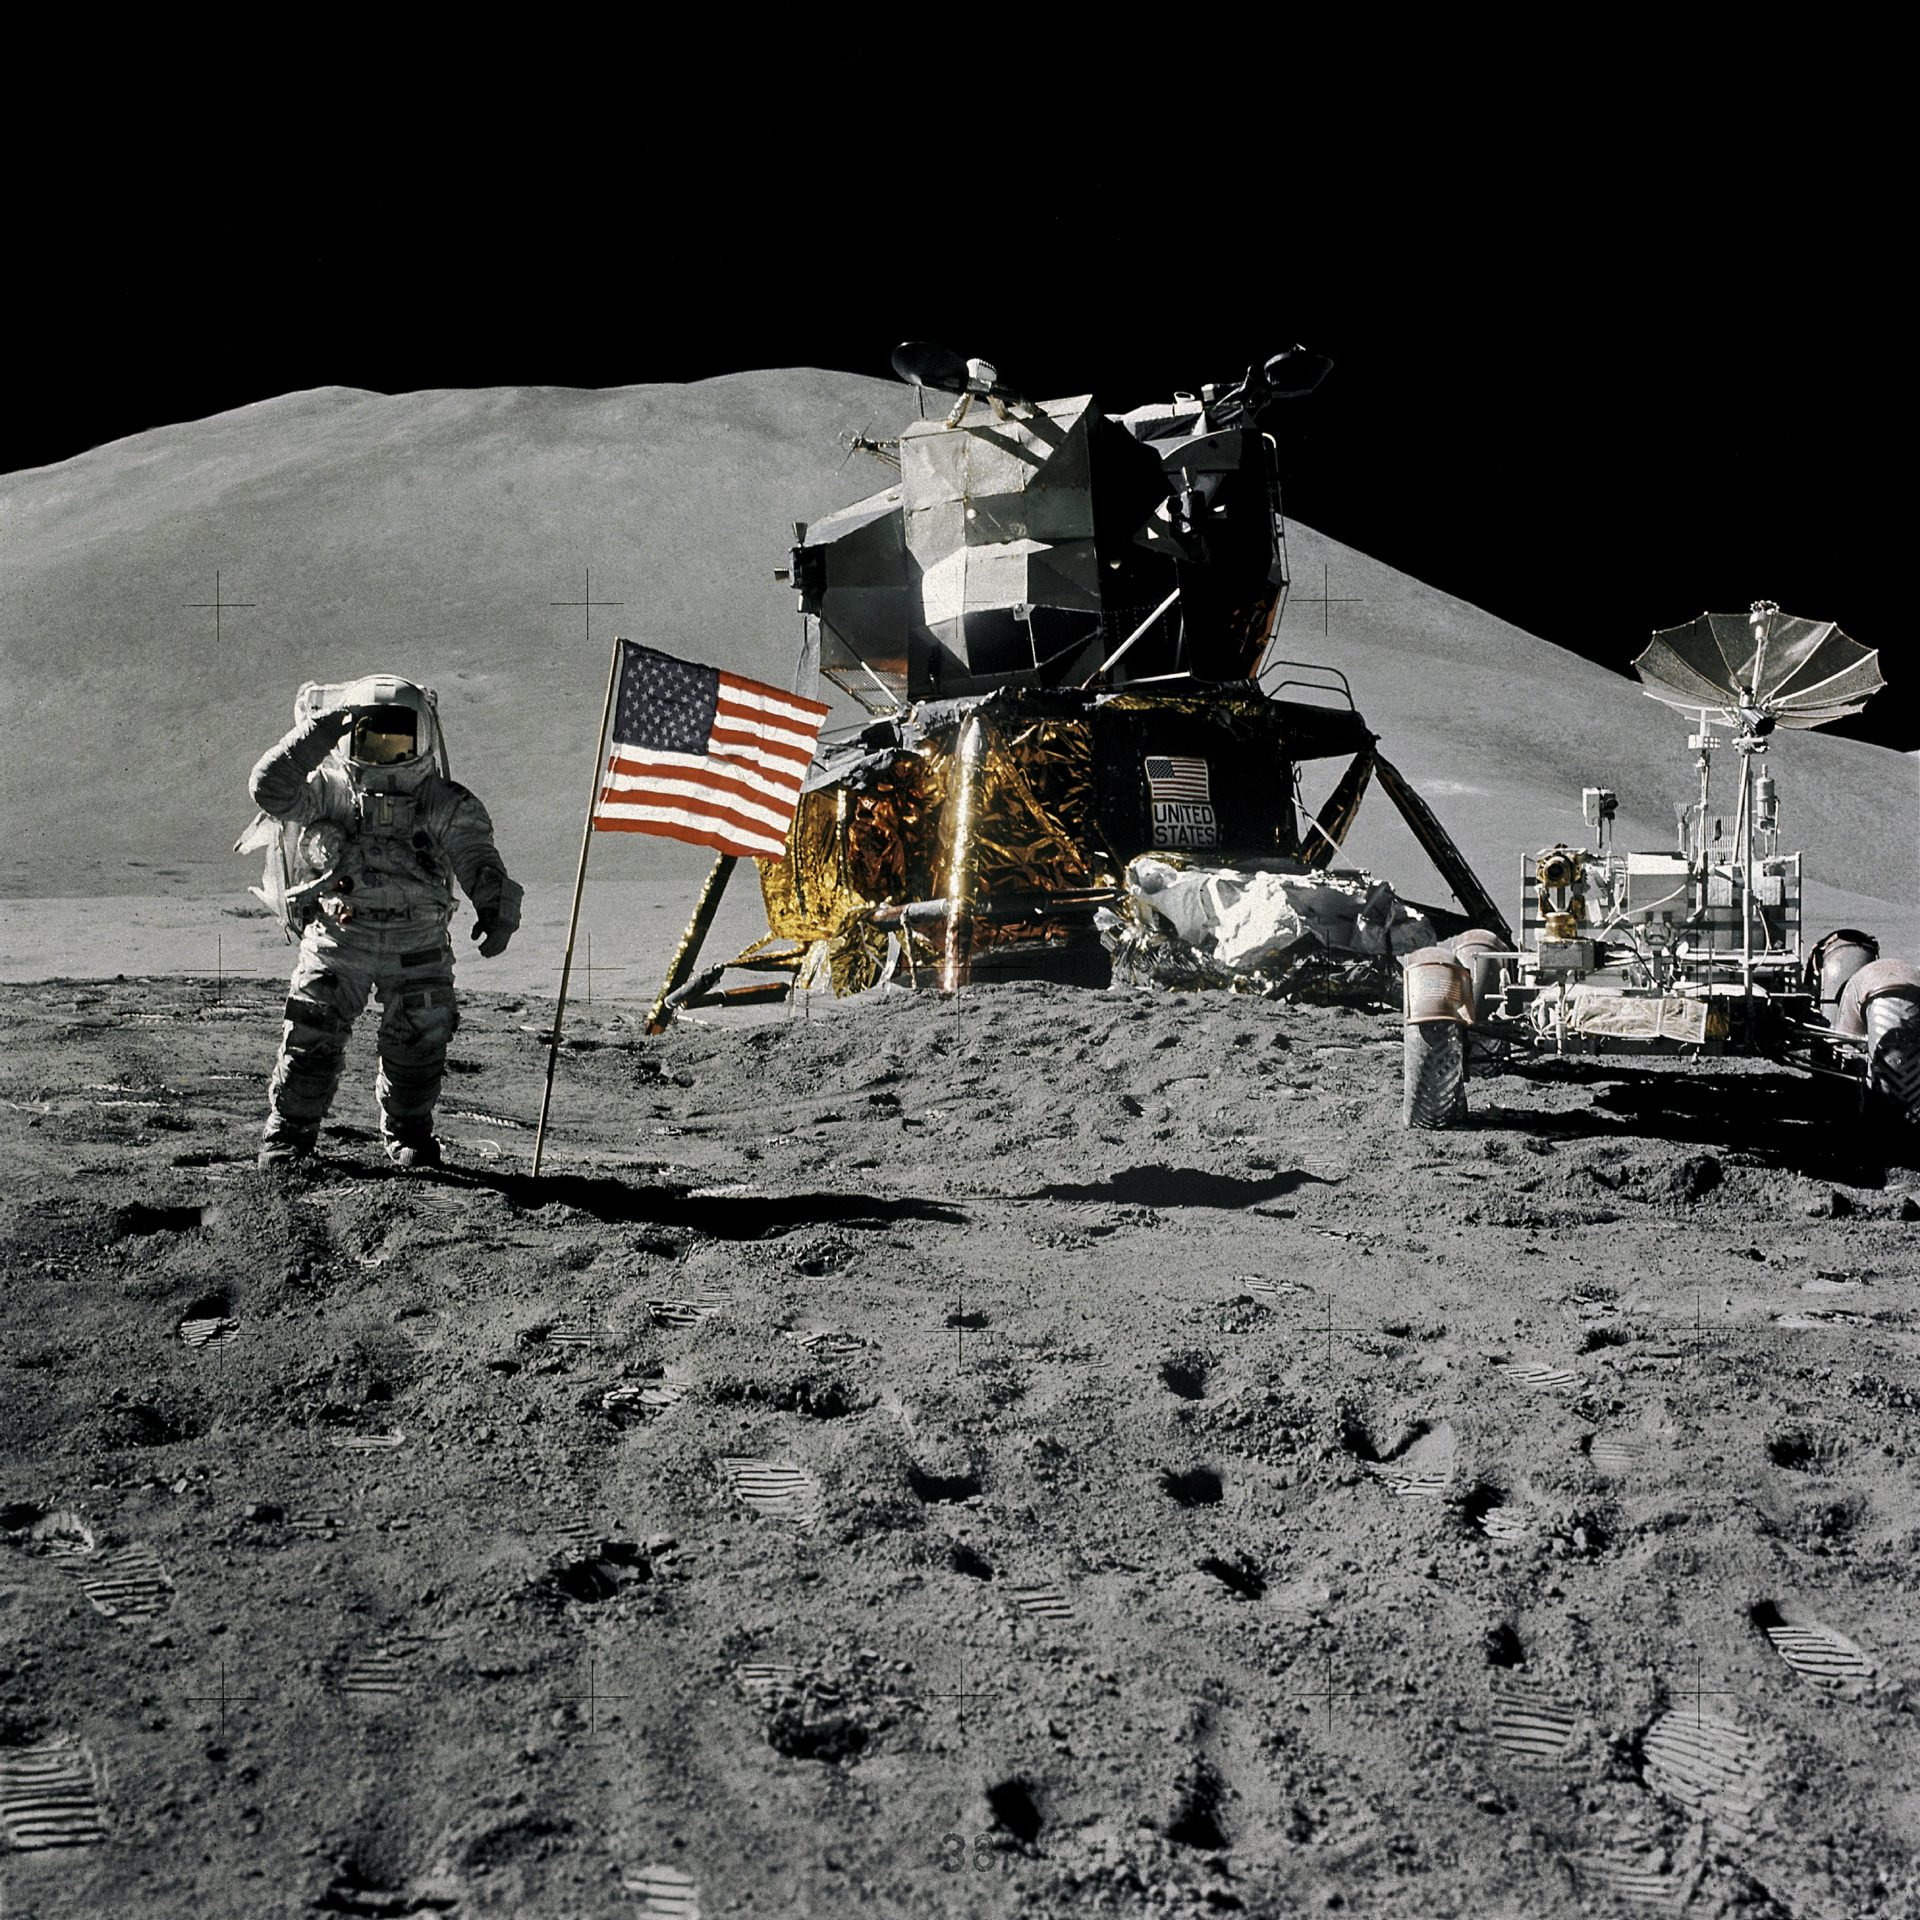 Compared to the past when only a couple of nations like the U.S. and Russia had the technology to explore the moon, the race to extract helium-3 is seeing increasing competition from developing countries like China and India. (Image: NASA)